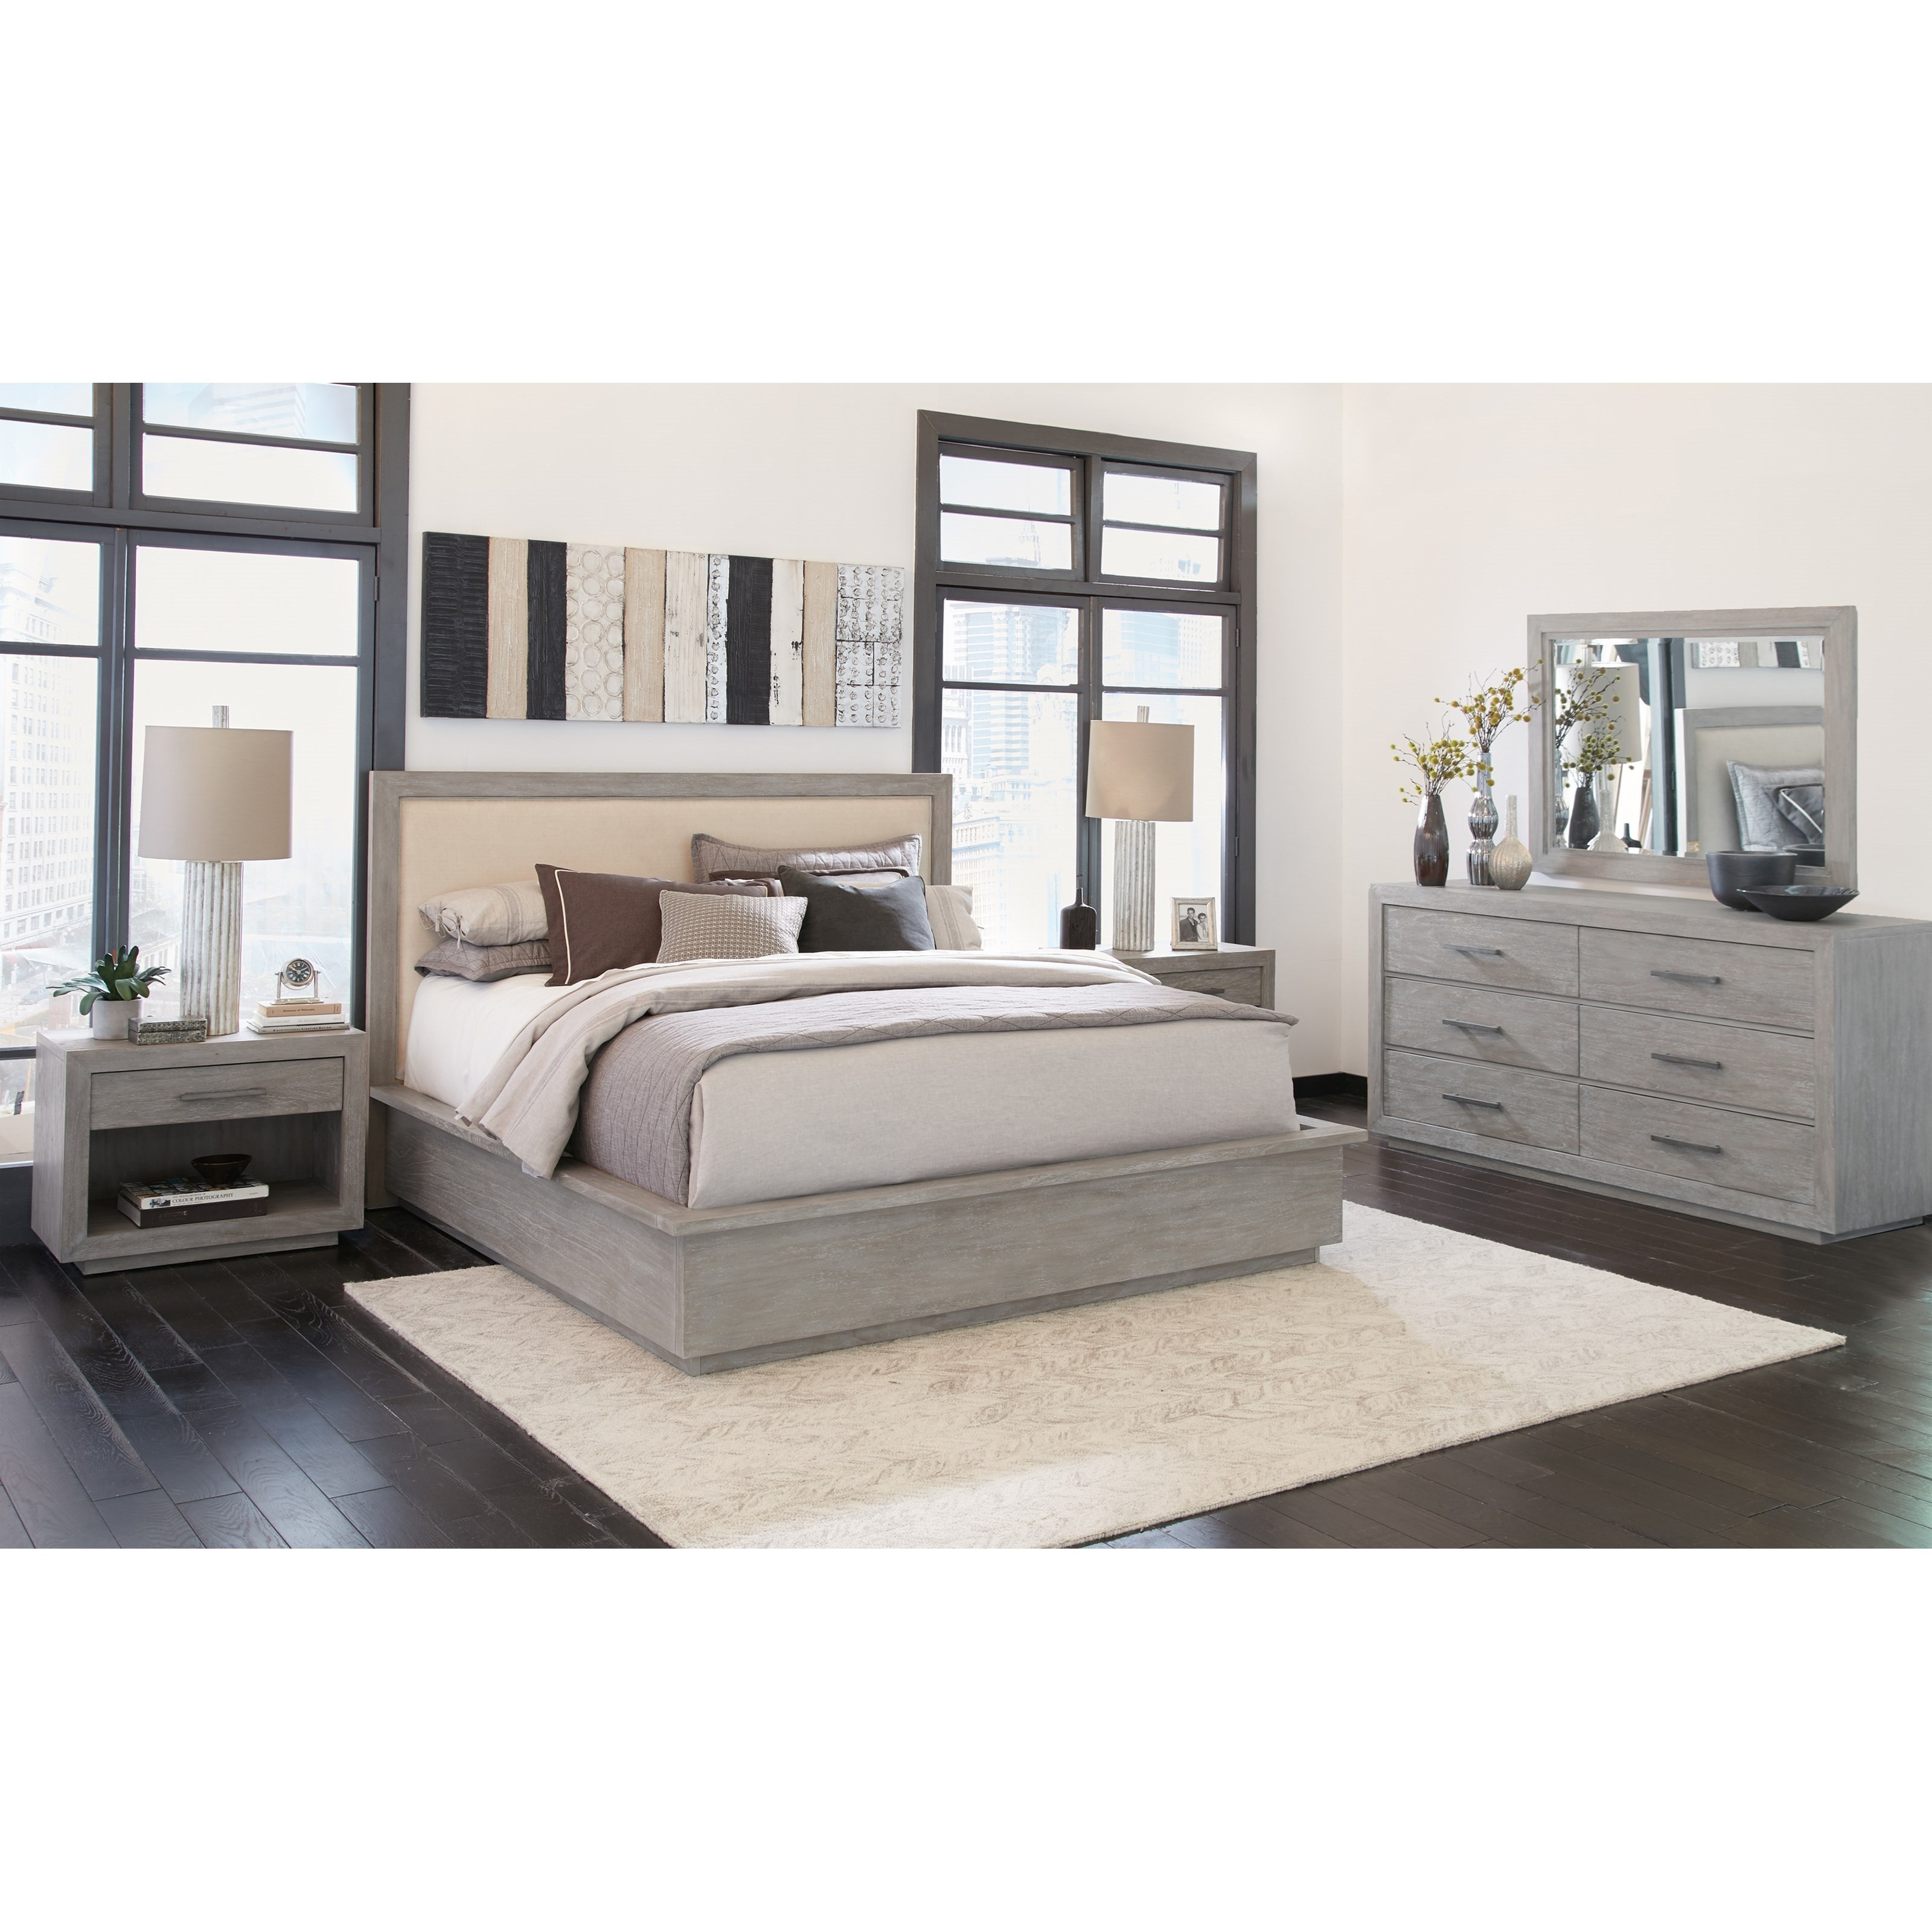 ... Hekman Berkeley HeightsQueen Bedroom Group